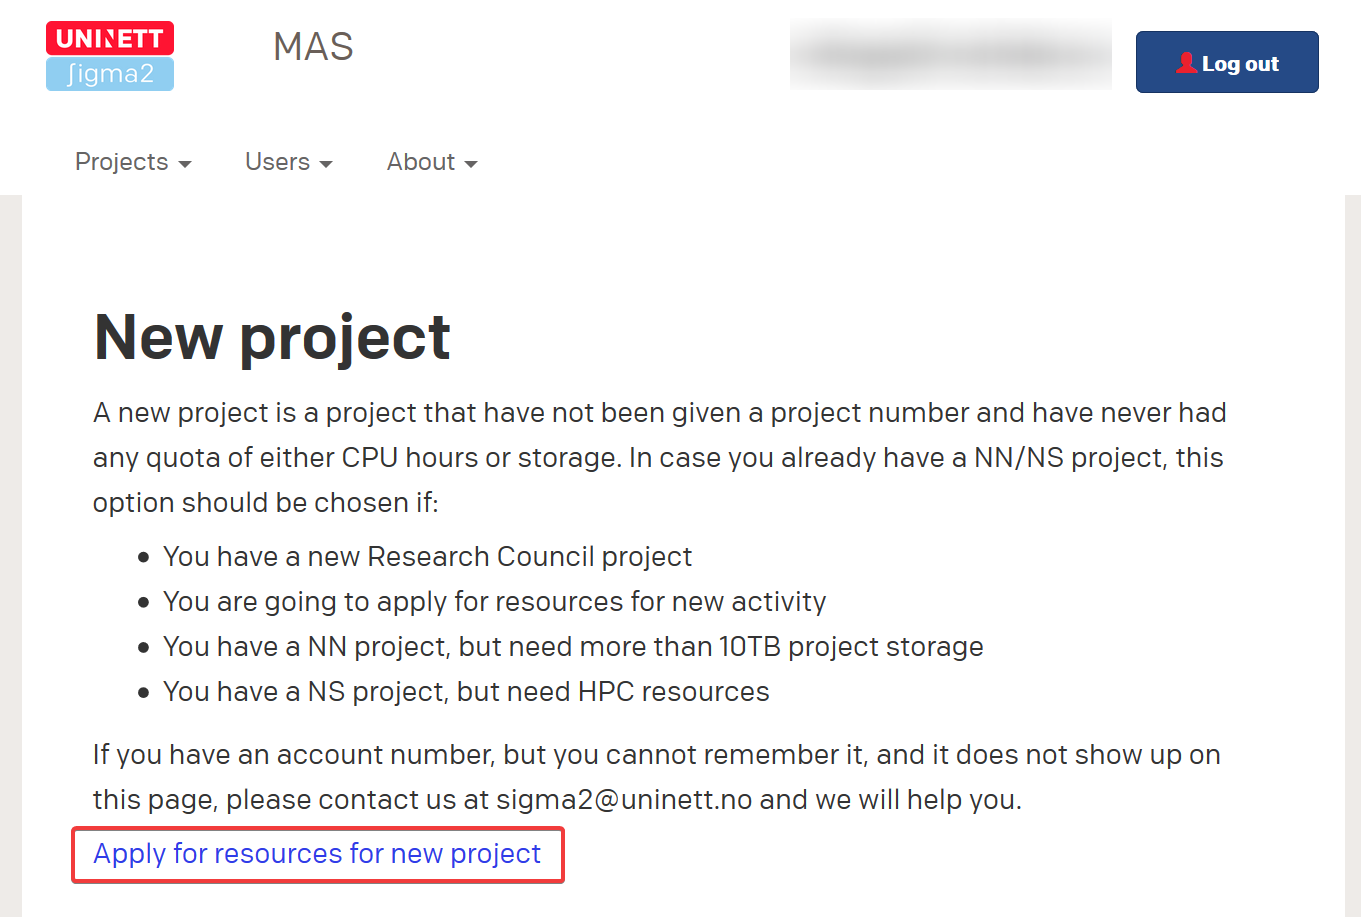 MAS apply for new project